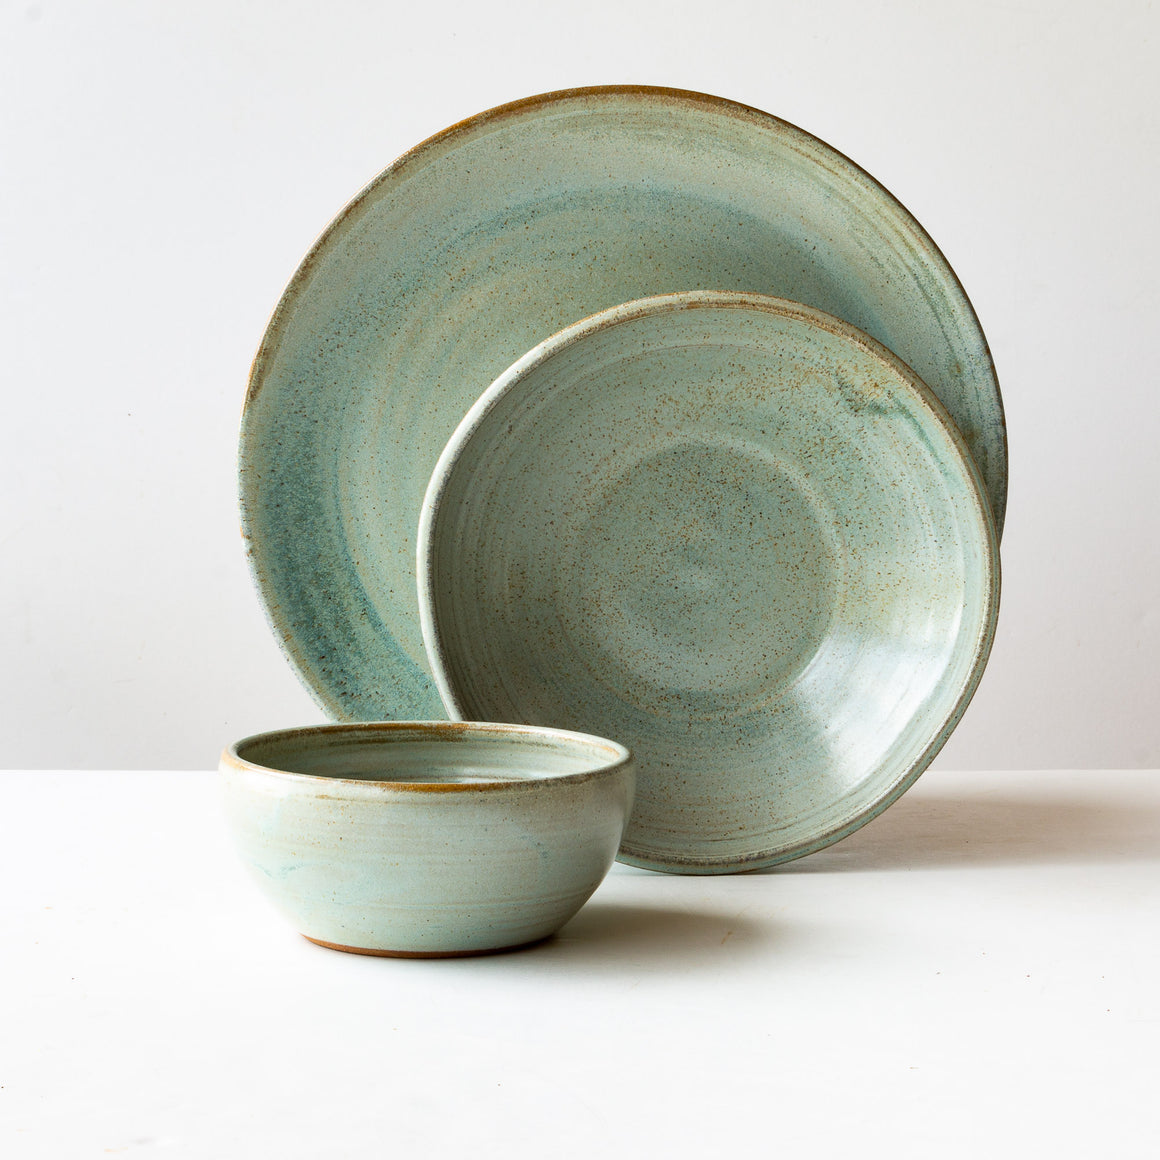 Top View - Handmade 3-Piece Dinnerware Set in Greyish Green Stoneware - Sold by Chic & Basta